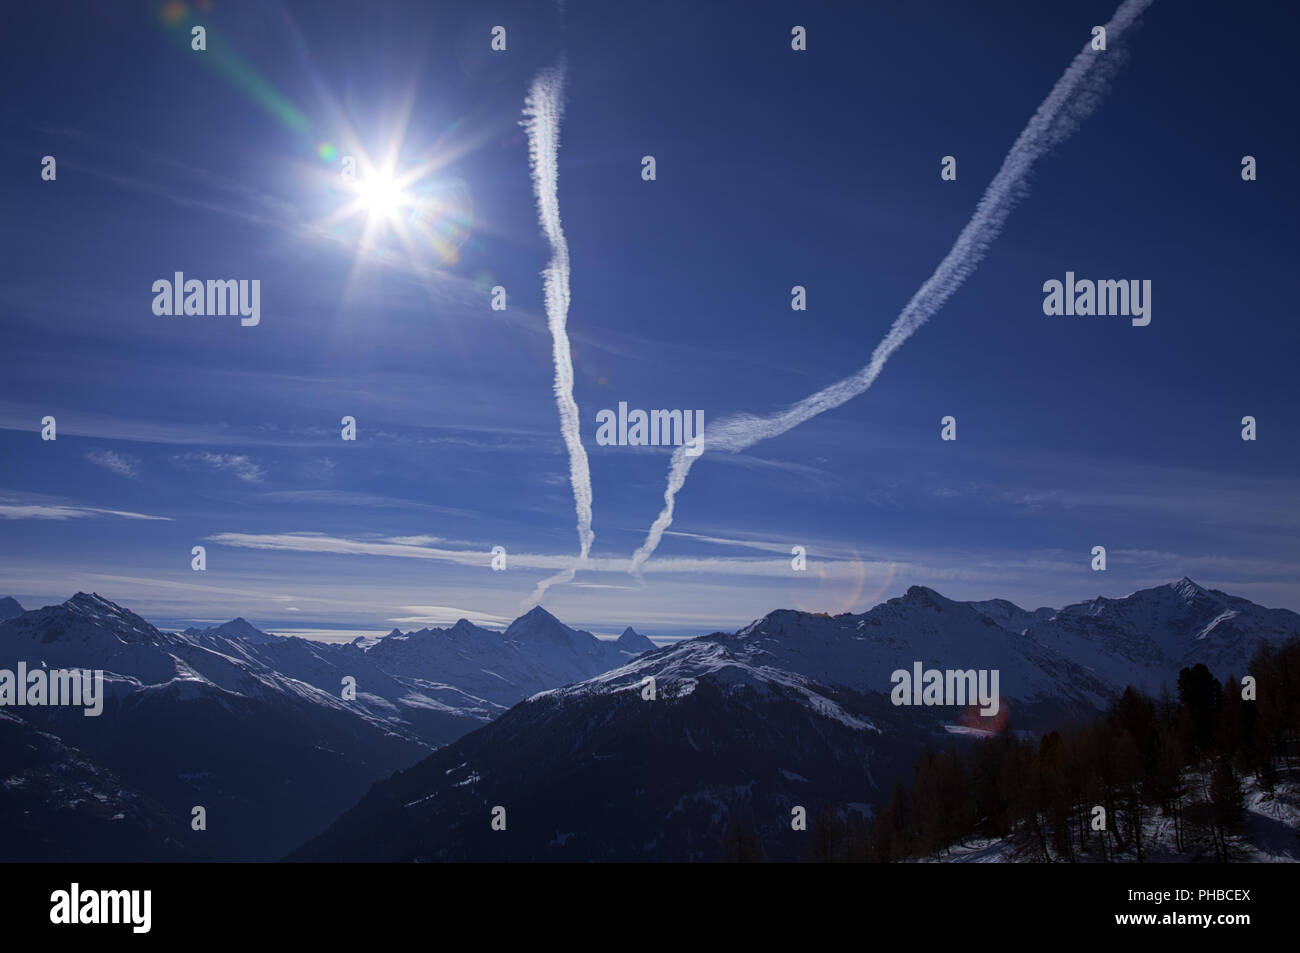 FLIGHT ROUTES IN THE SKY - Stock Image